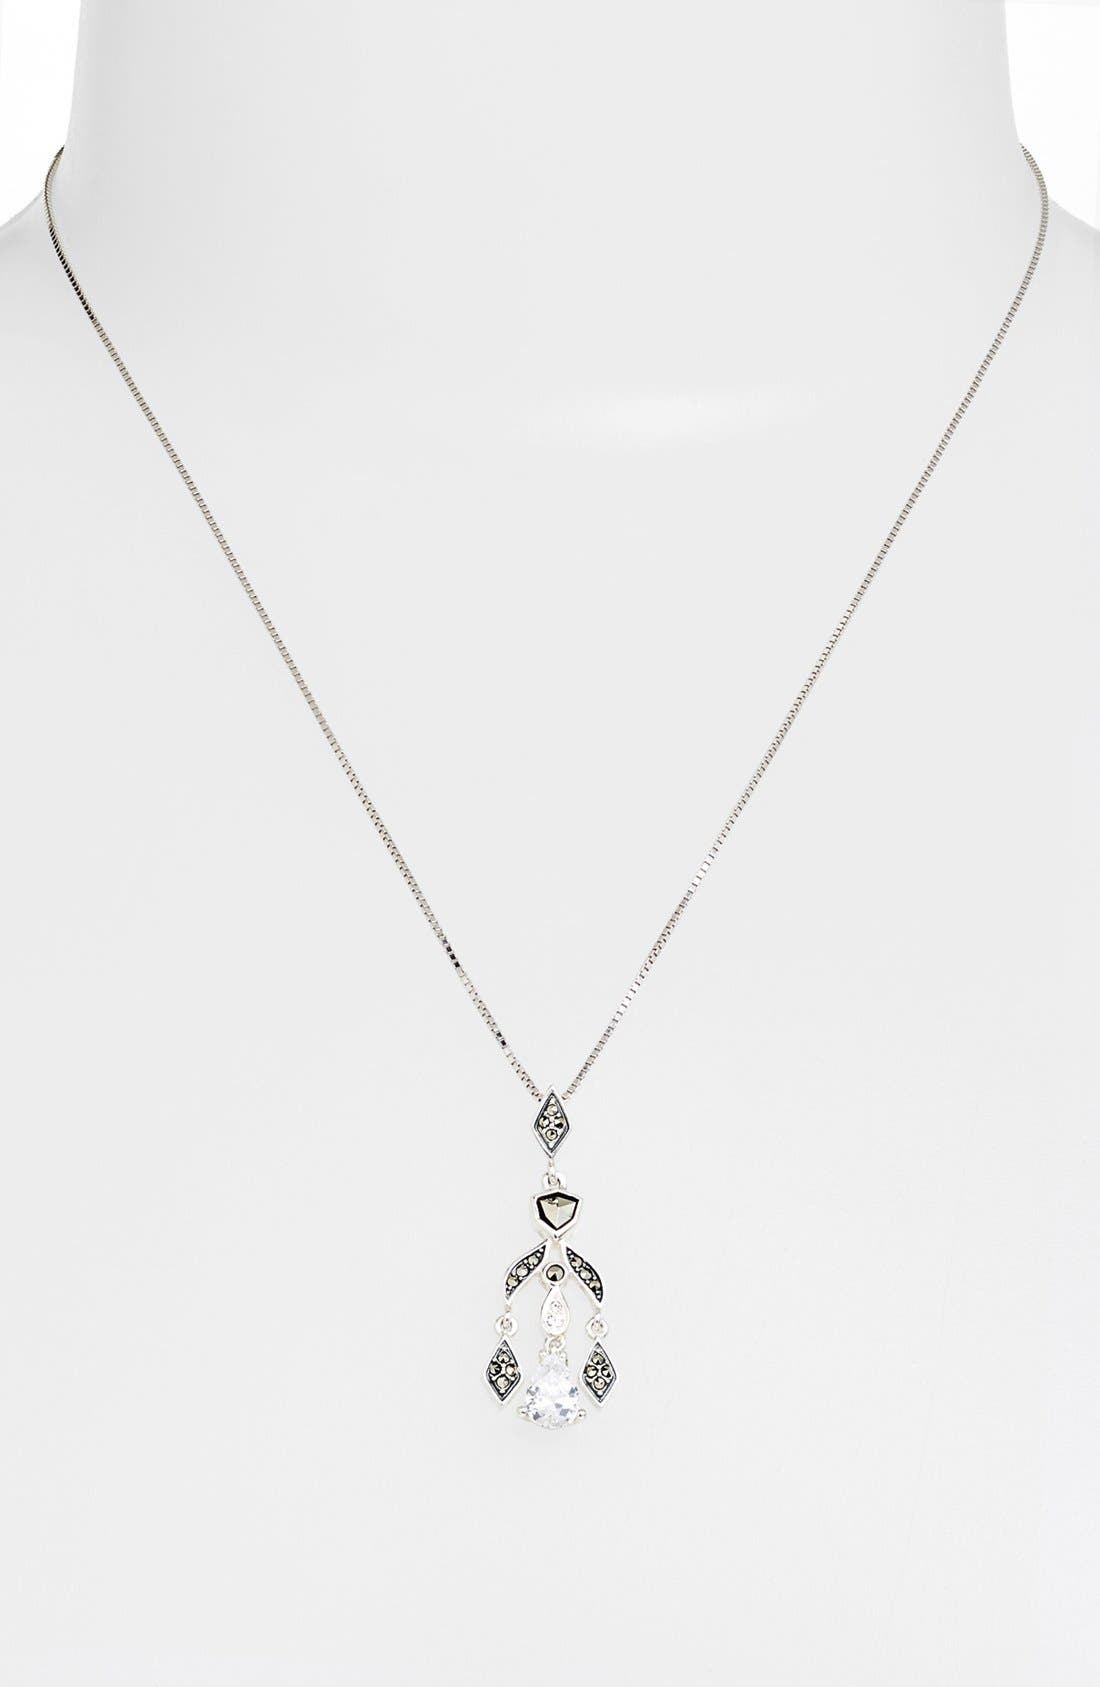 Main Image - Judith Jack 'Party Ears' Chandelier Pendant Necklace